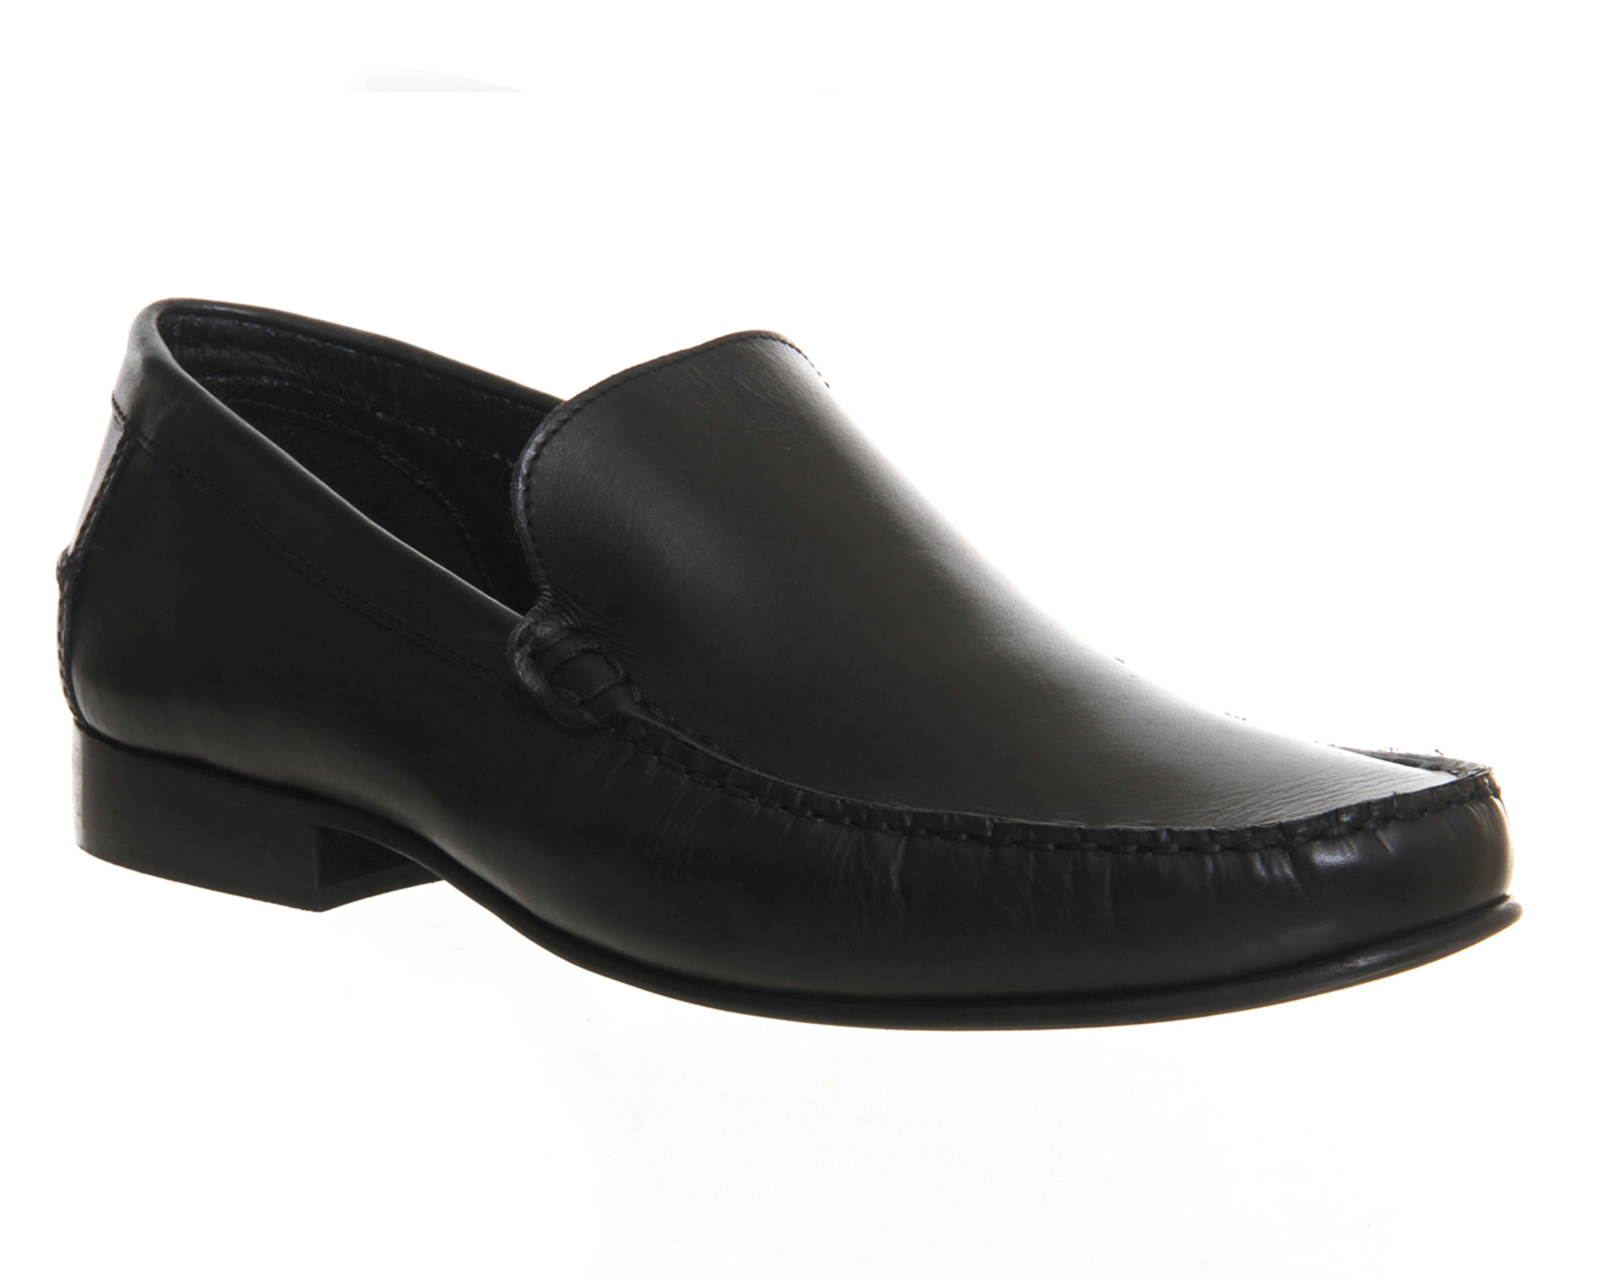 mens office billy loafers black leather formal shoes ebay